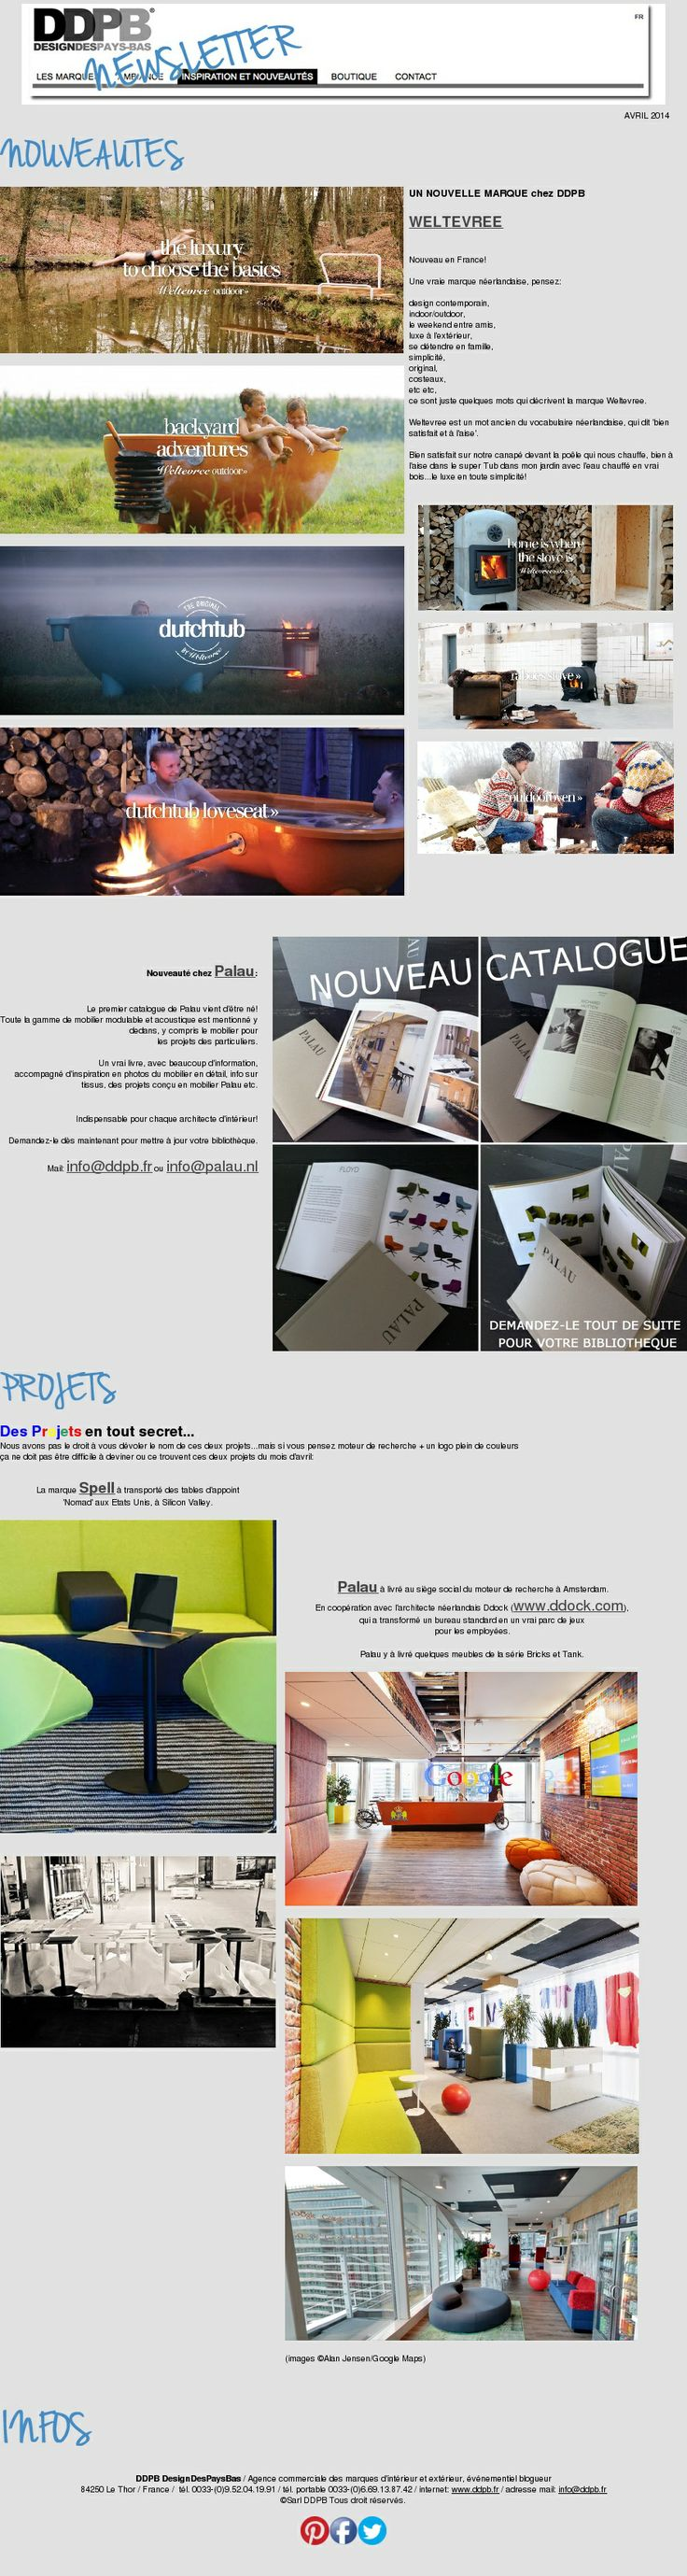 61 best DDPB - the brands we represent in France images on ...